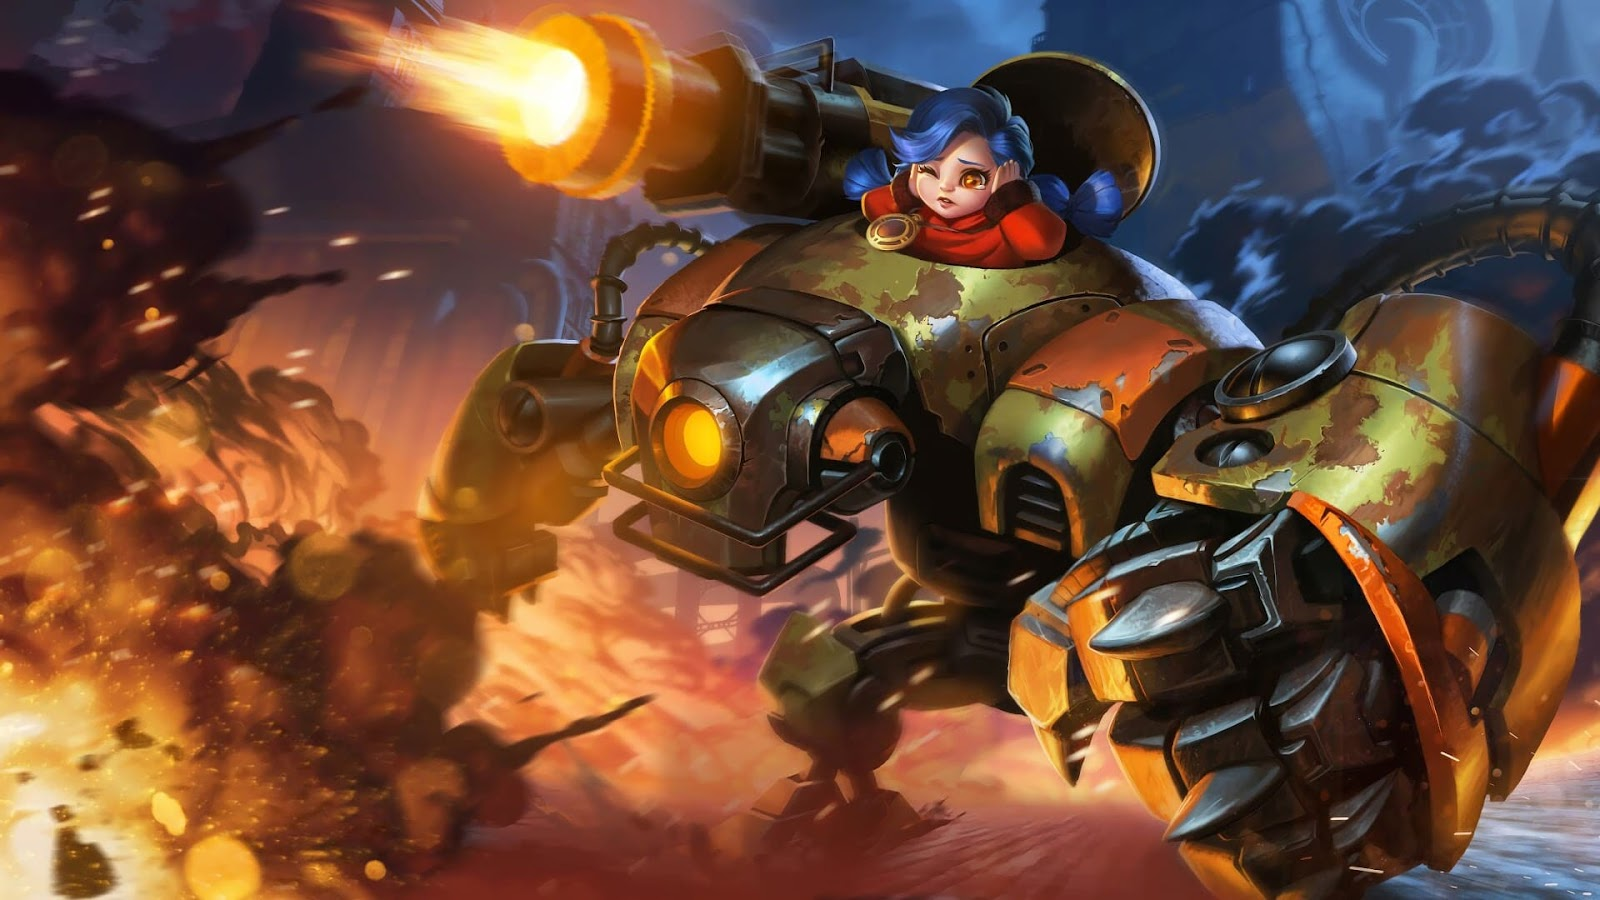 Wallpaper Jawhead Steel Sweetheart Skin Mobile Legends HD for PC